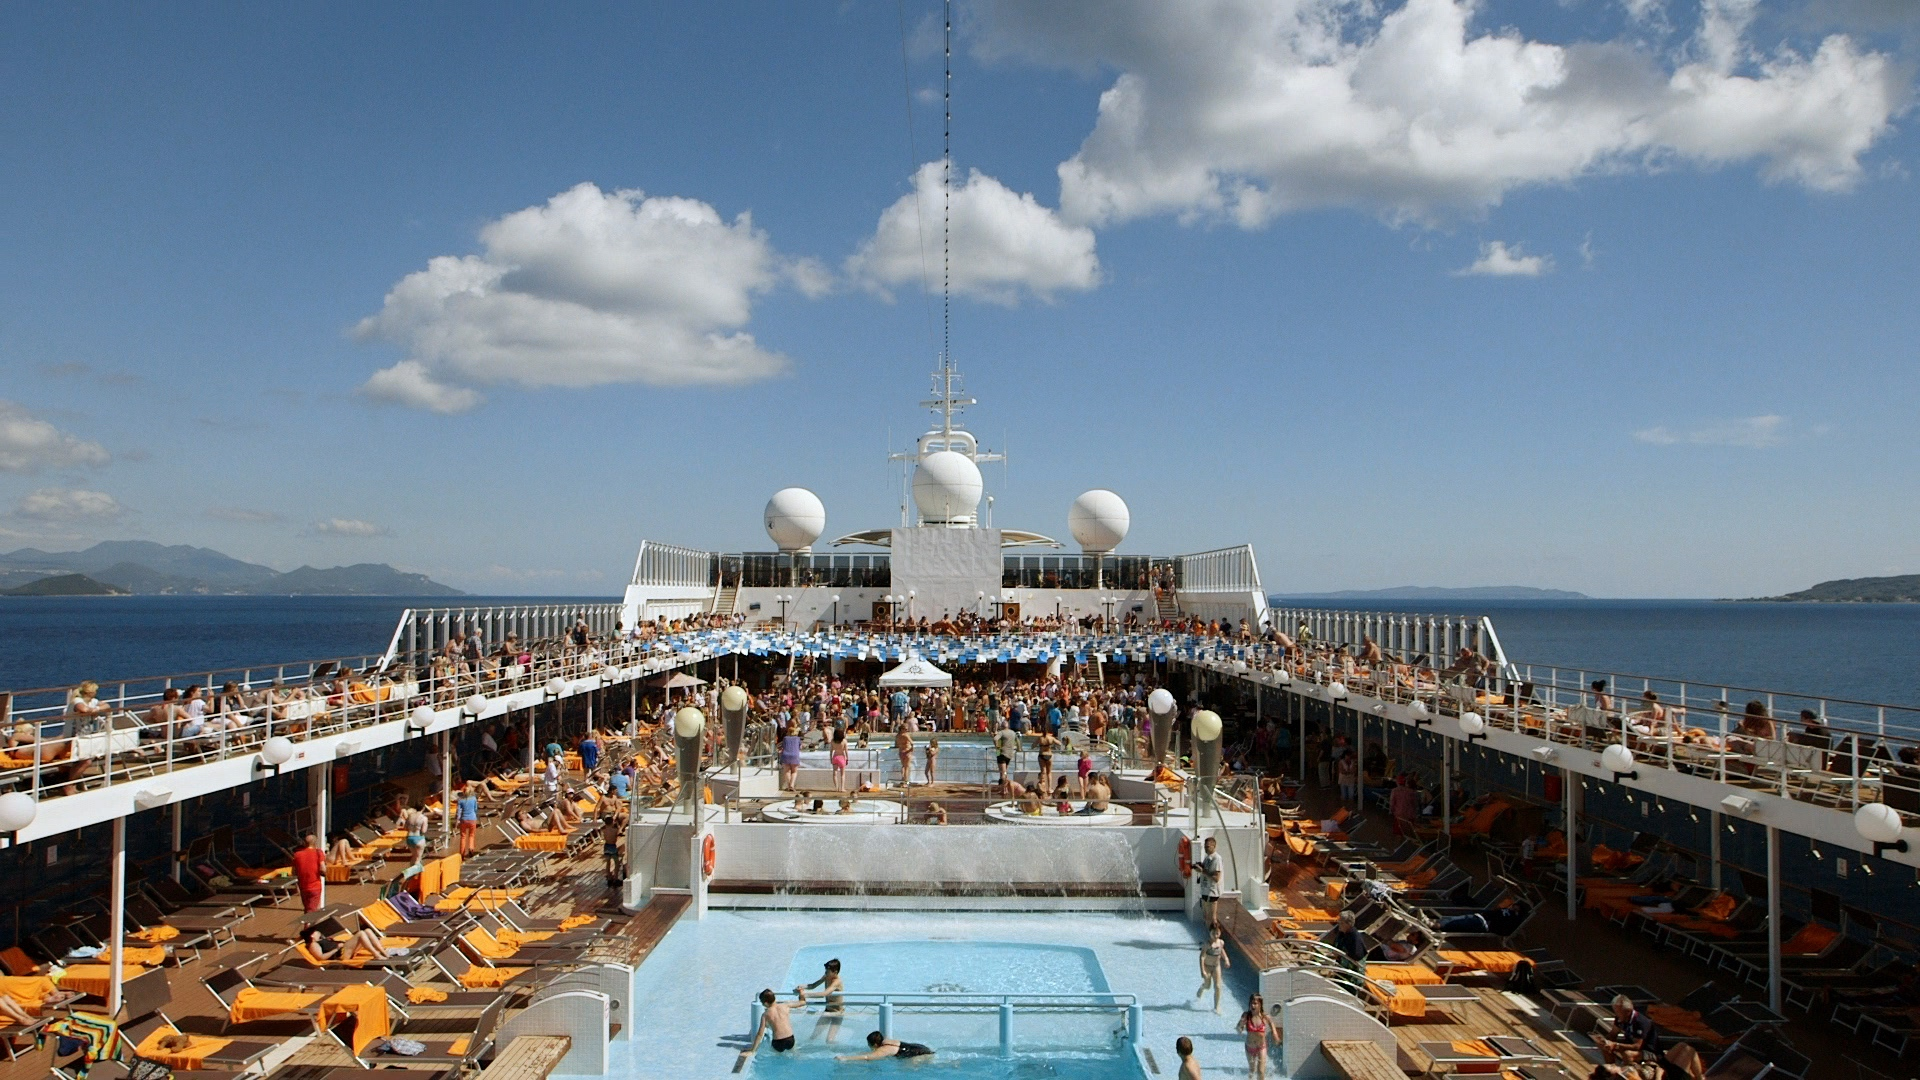 RWG_YT_PAISCHTCROISIERE_01150410